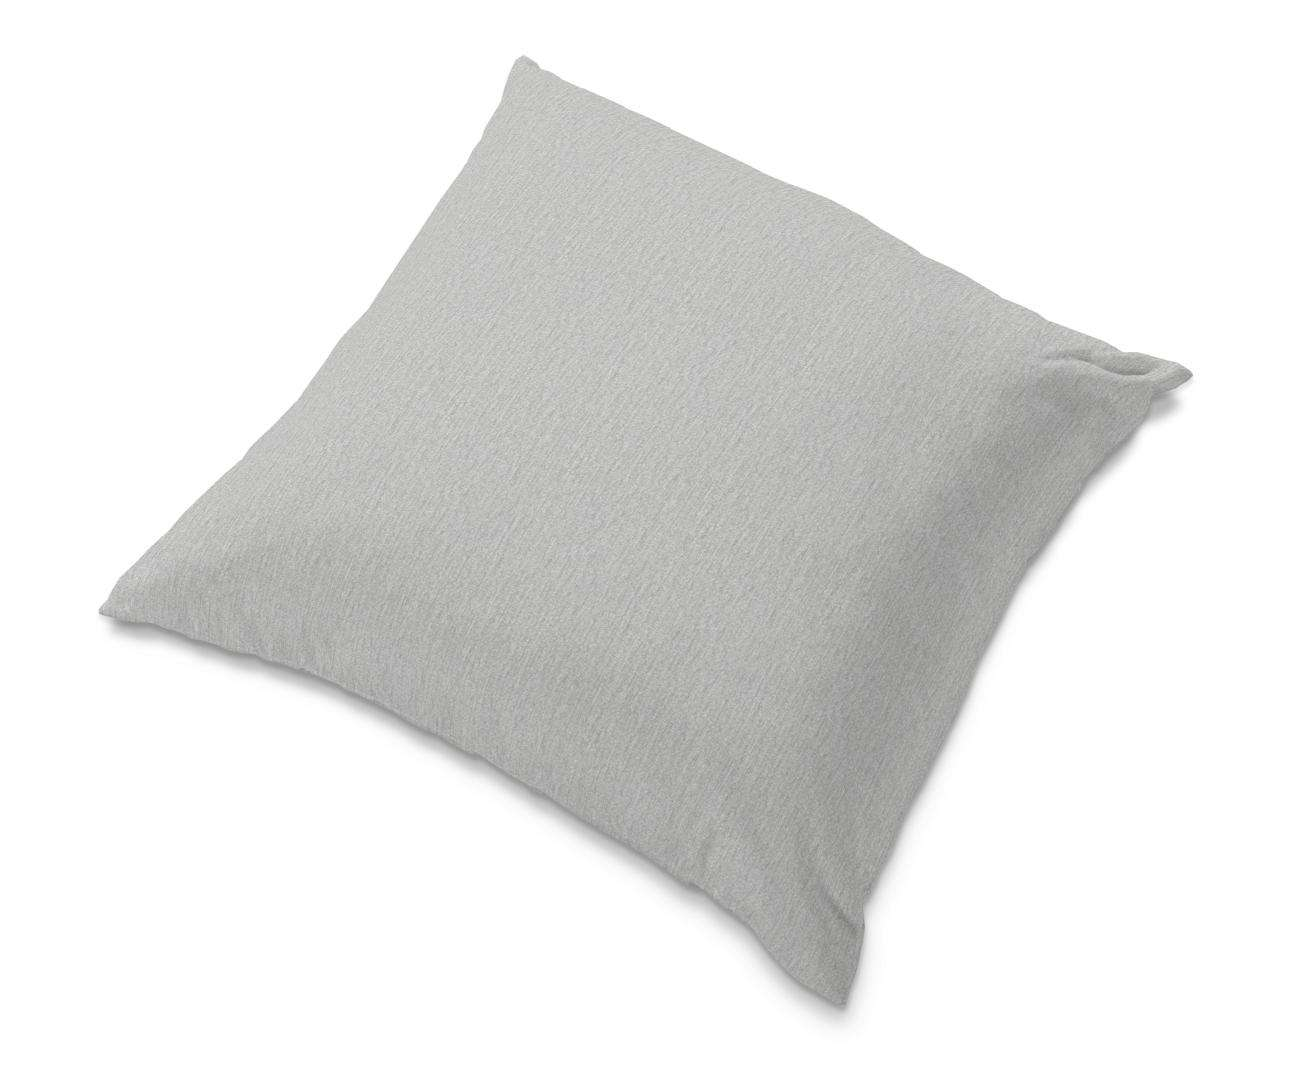 Tomelilla cushion cover 55 x 55 cm (22 x 22 inch) in collection Chenille, fabric: 702-23